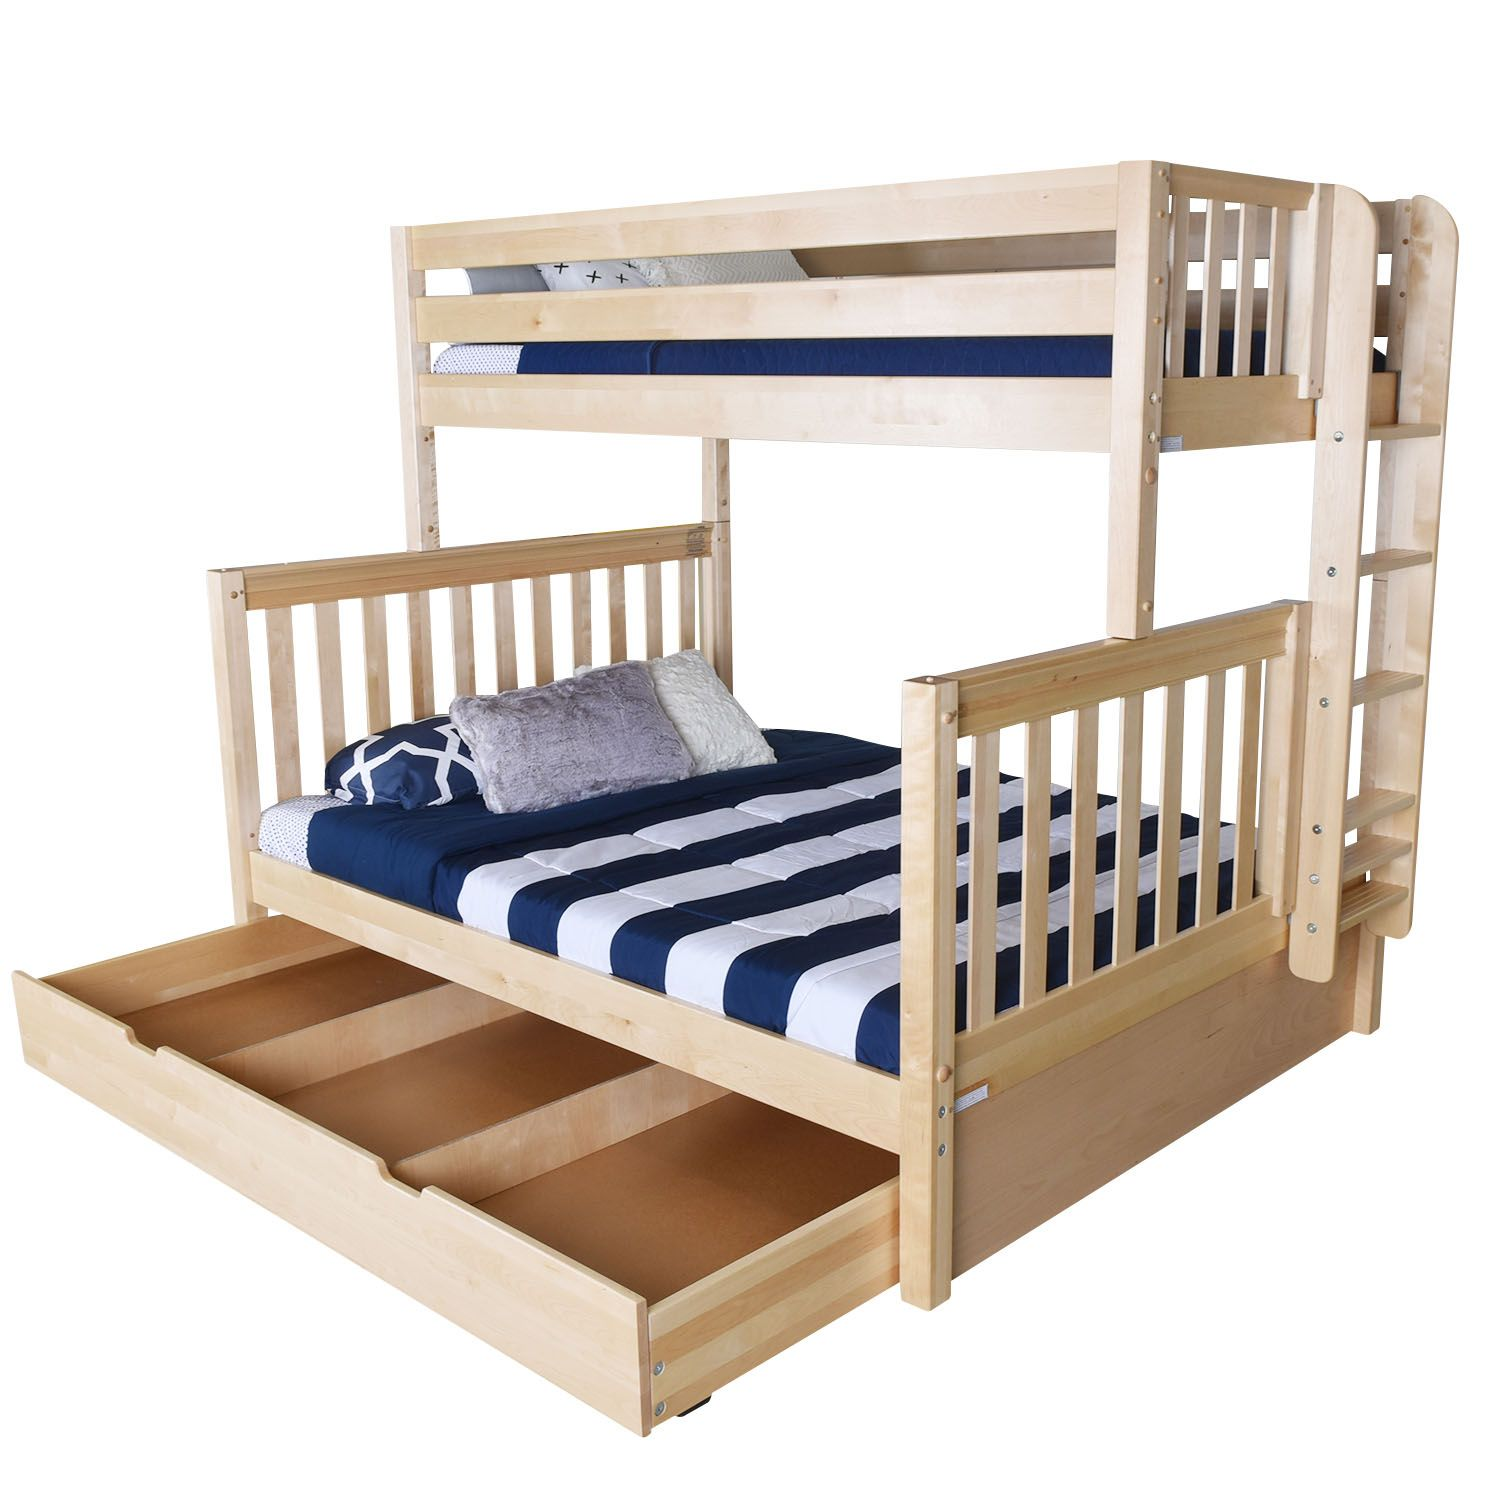 The Maxtrix Xl Twin Over Queen Bunk Bed Has All Your Storage Needs